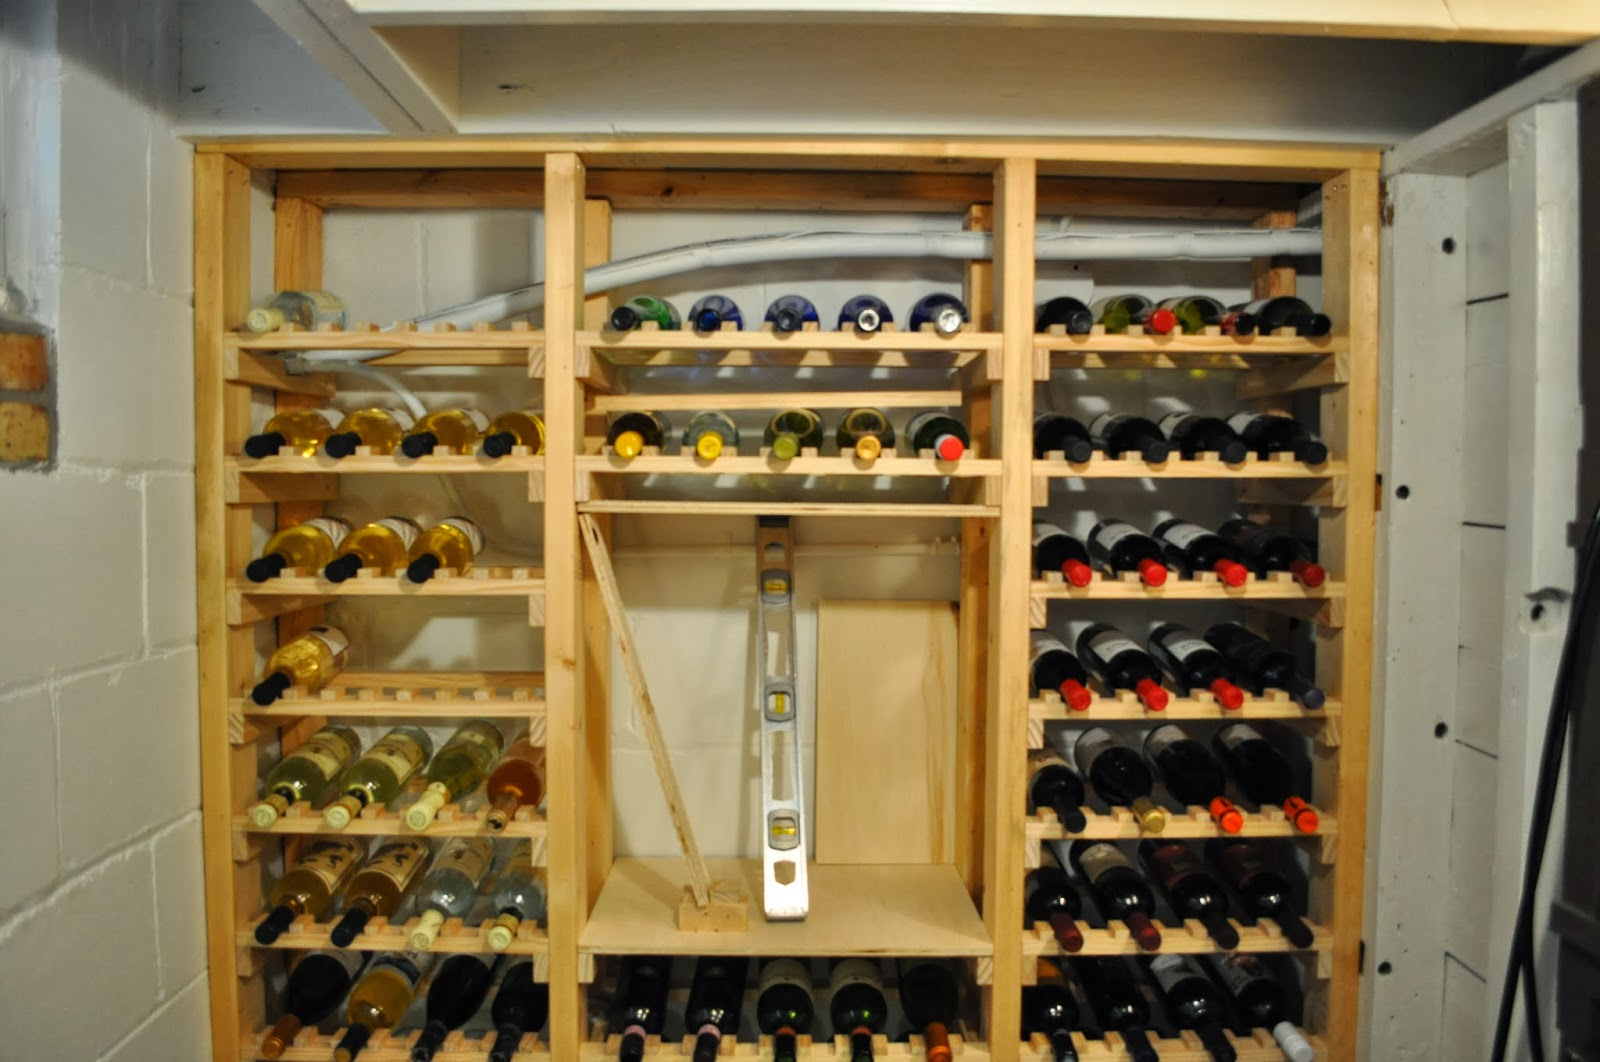 Wine Bottle Storage Angle Just So Lovely Our Wine Cellar The Beginning